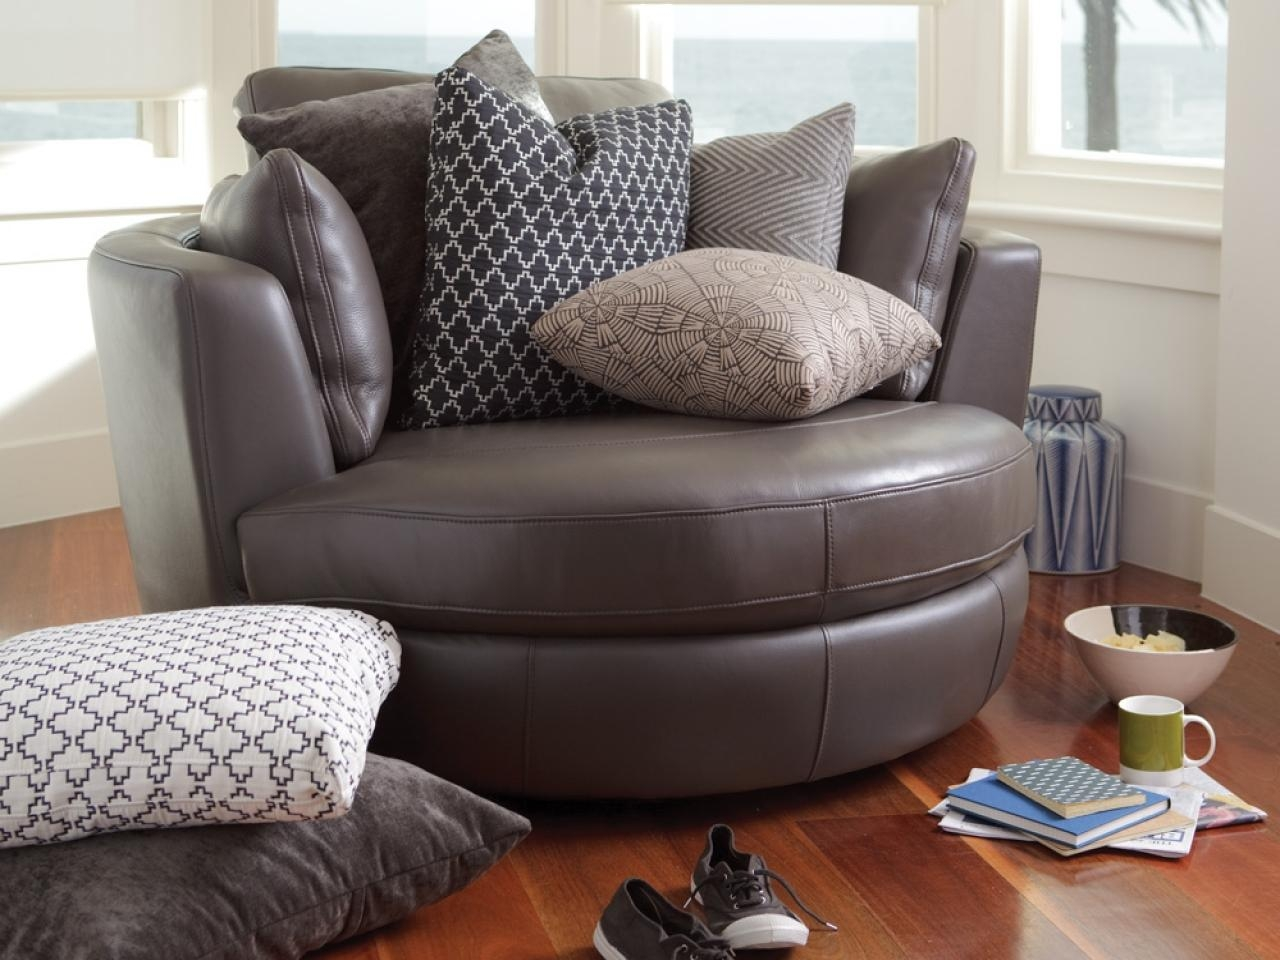 Cuddler Swivel Sofa Chair 18 With Cuddler Swivel Sofa Chair For Cuddler Swivel Sofa Chairs (View 7 of 20)